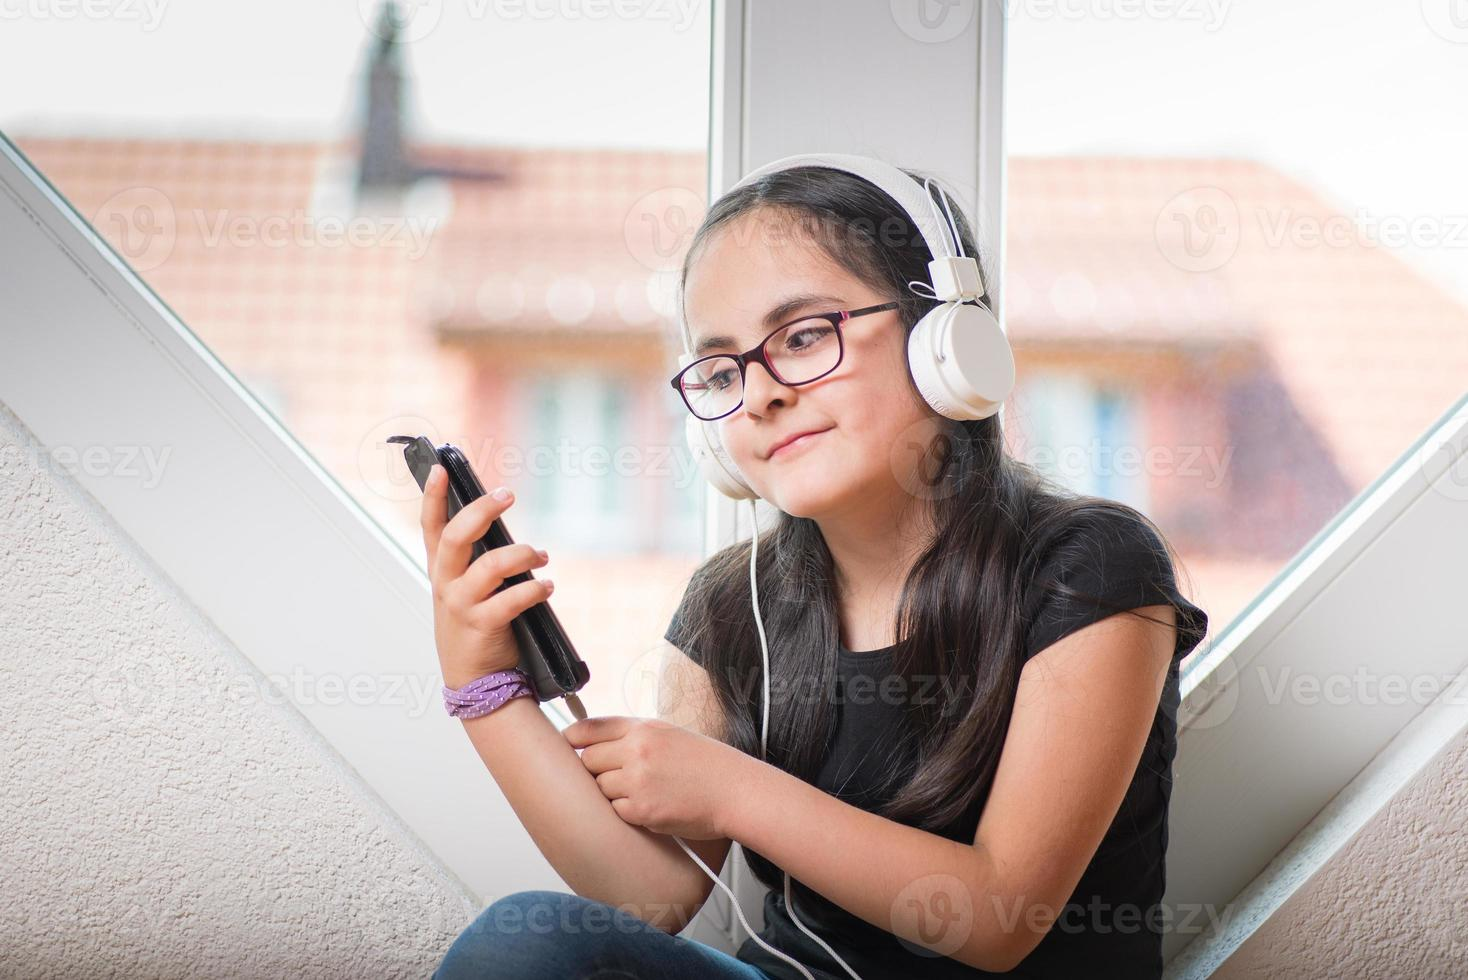 Cute girl with glasses listening to music photo